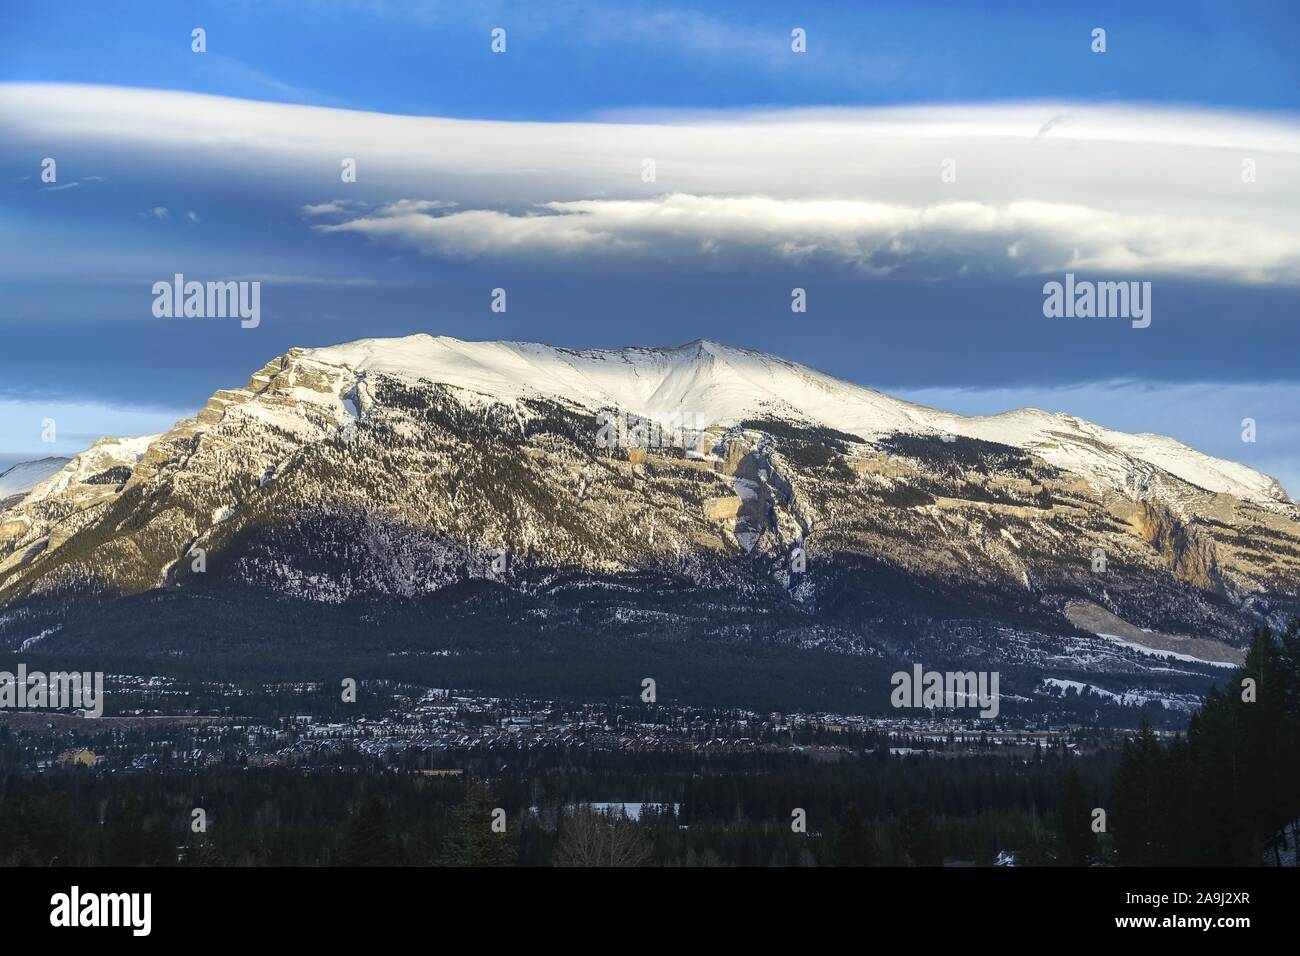 snowcapped-grotto-mountain-peak-landscap